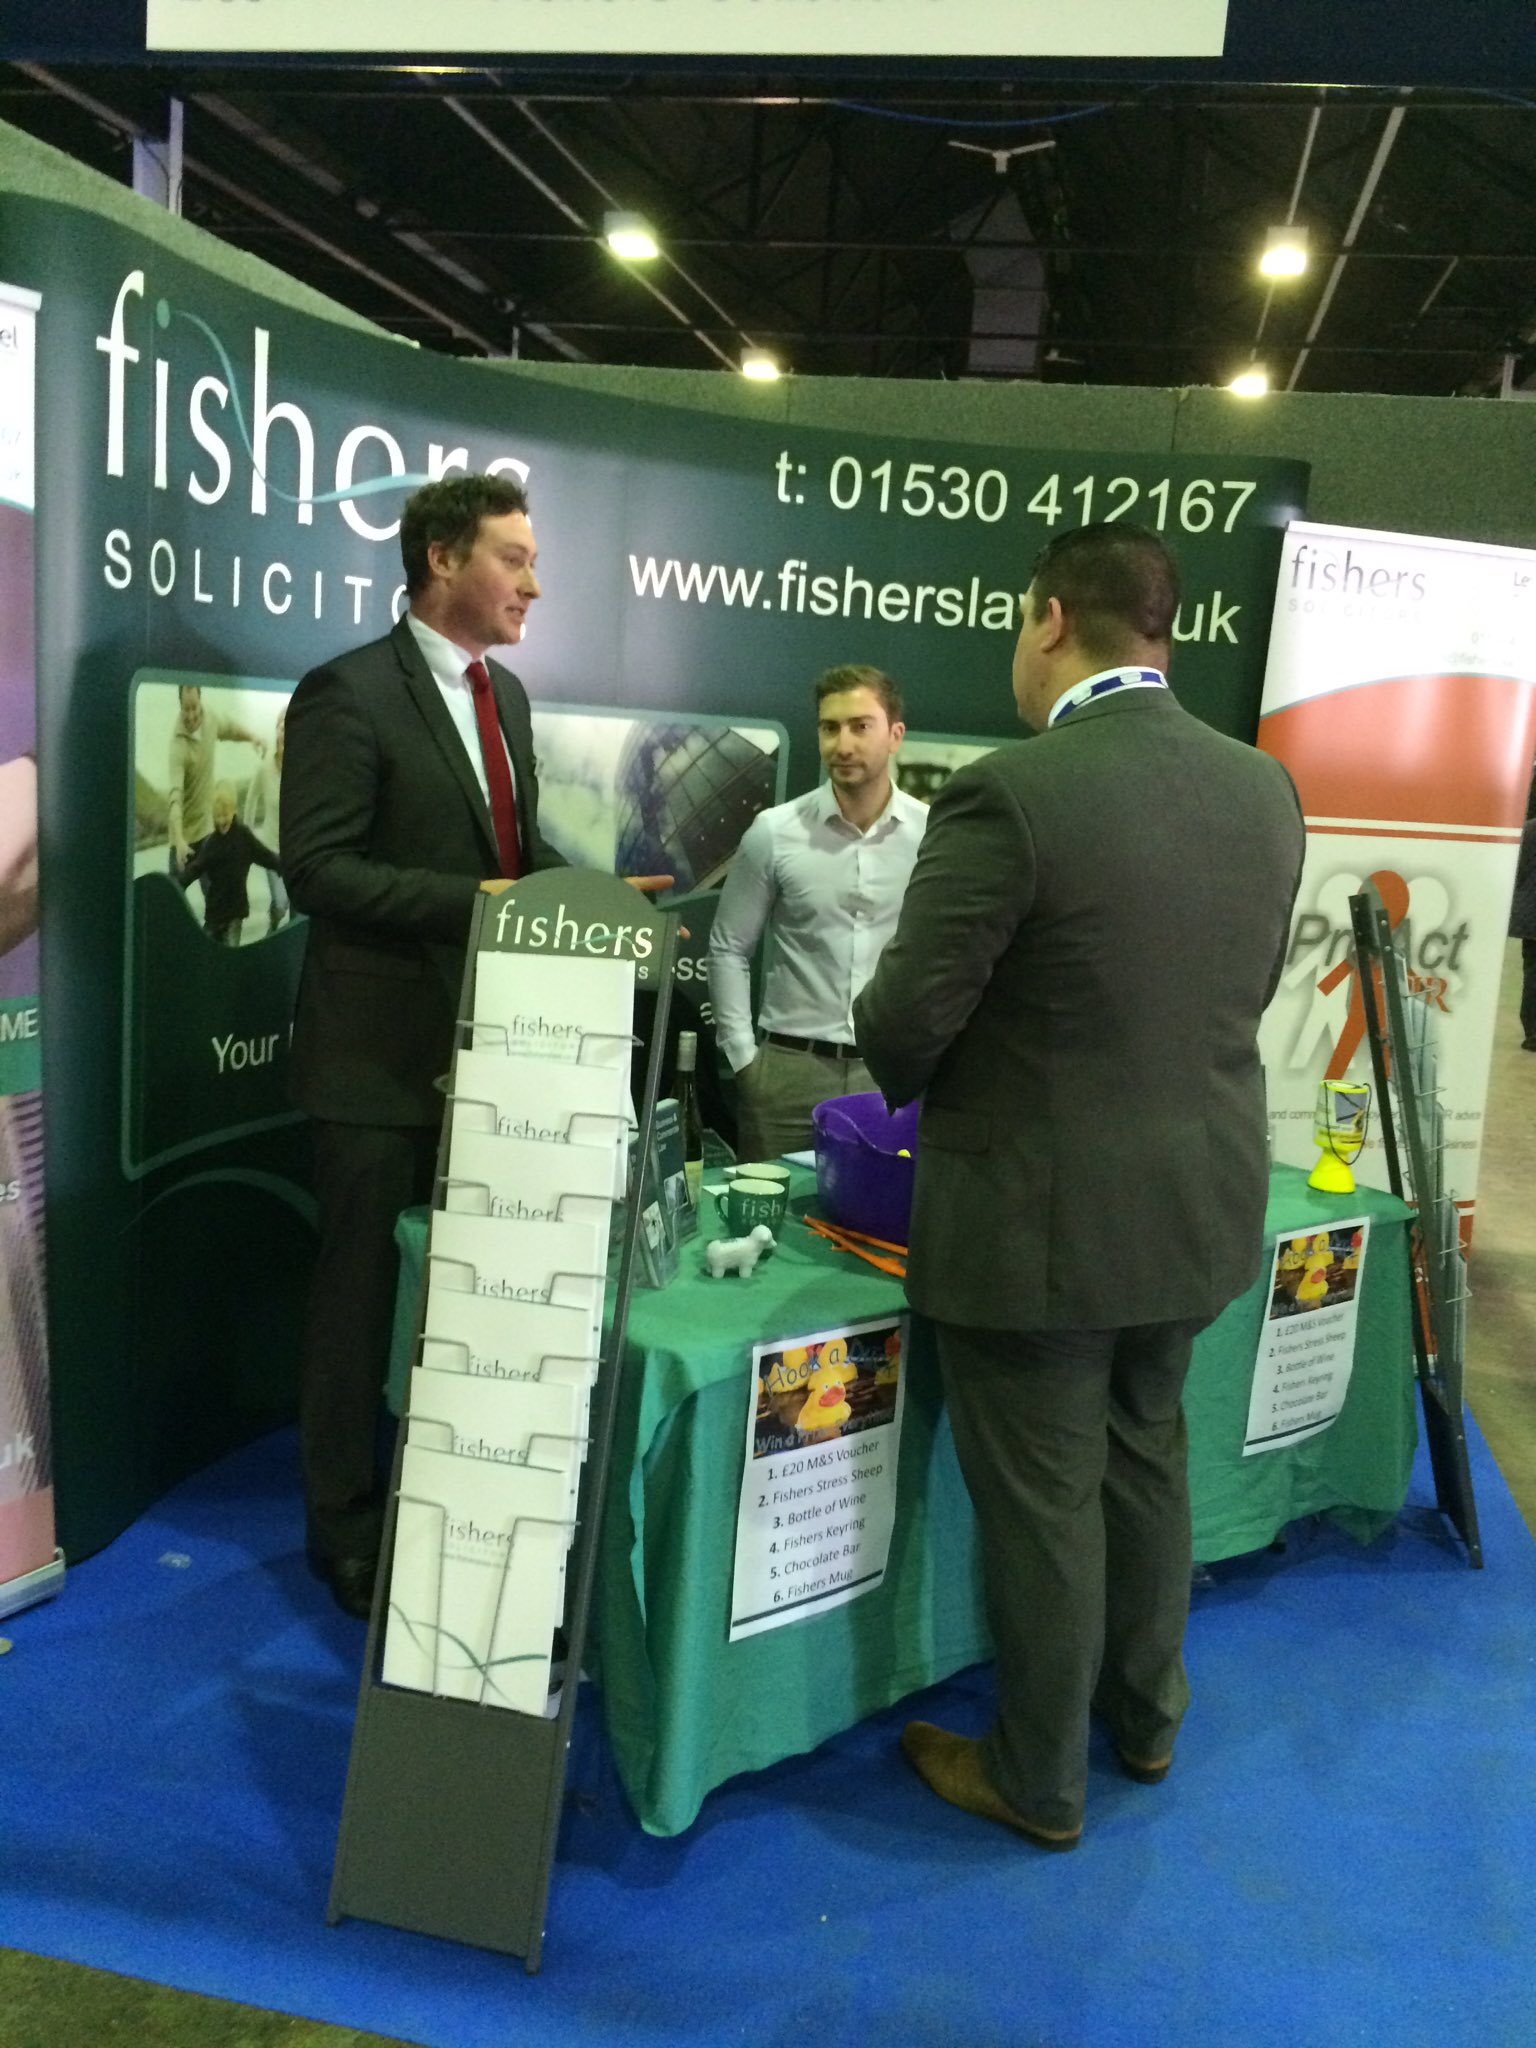 RT @SenceAccounting: Good to see @Fisherslaw today @LoveBusinessBuz https://t.co/KtdaBonkZ2